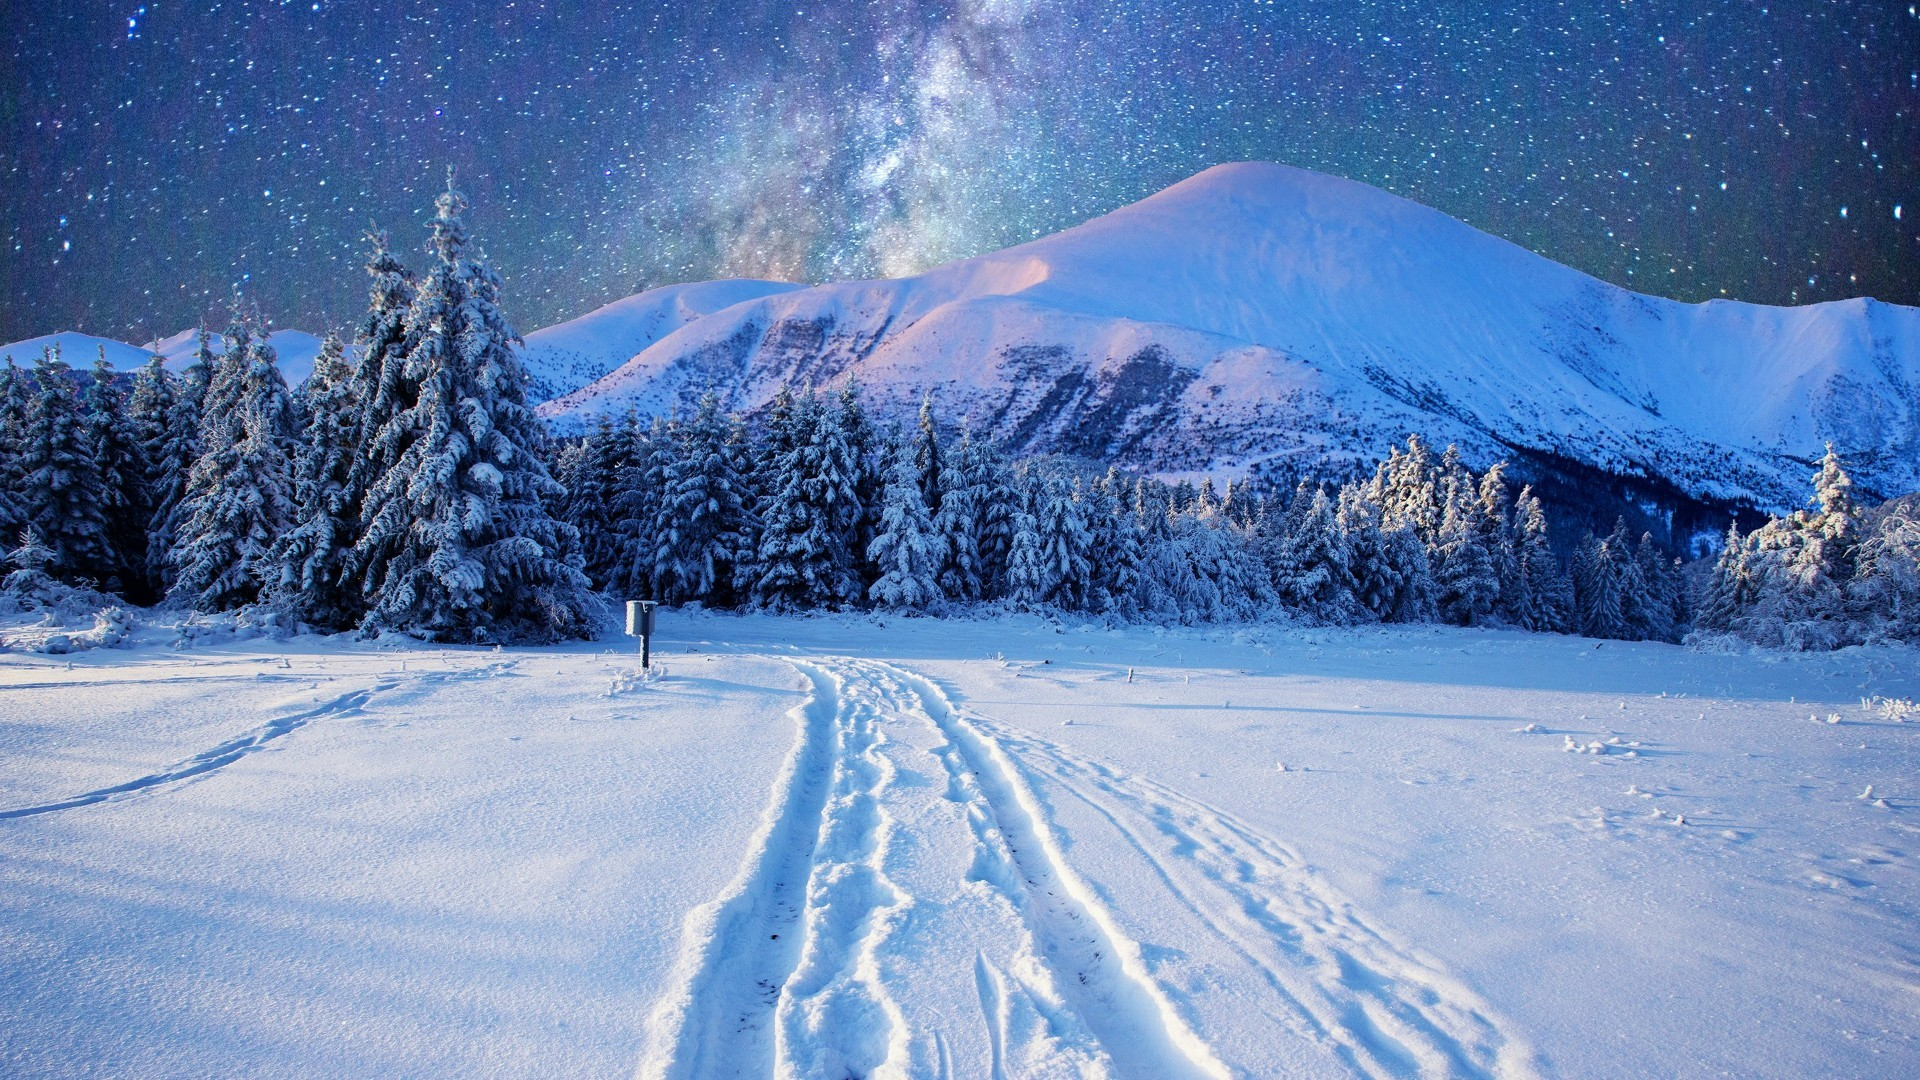 Res: 1920x1080, Milky Way On The Night Sky Over The Snowy Mountains Wallpaper | Wallpaper  Studio 10 | Tens of thousands HD and UltraHD wallpapers for Android, ...